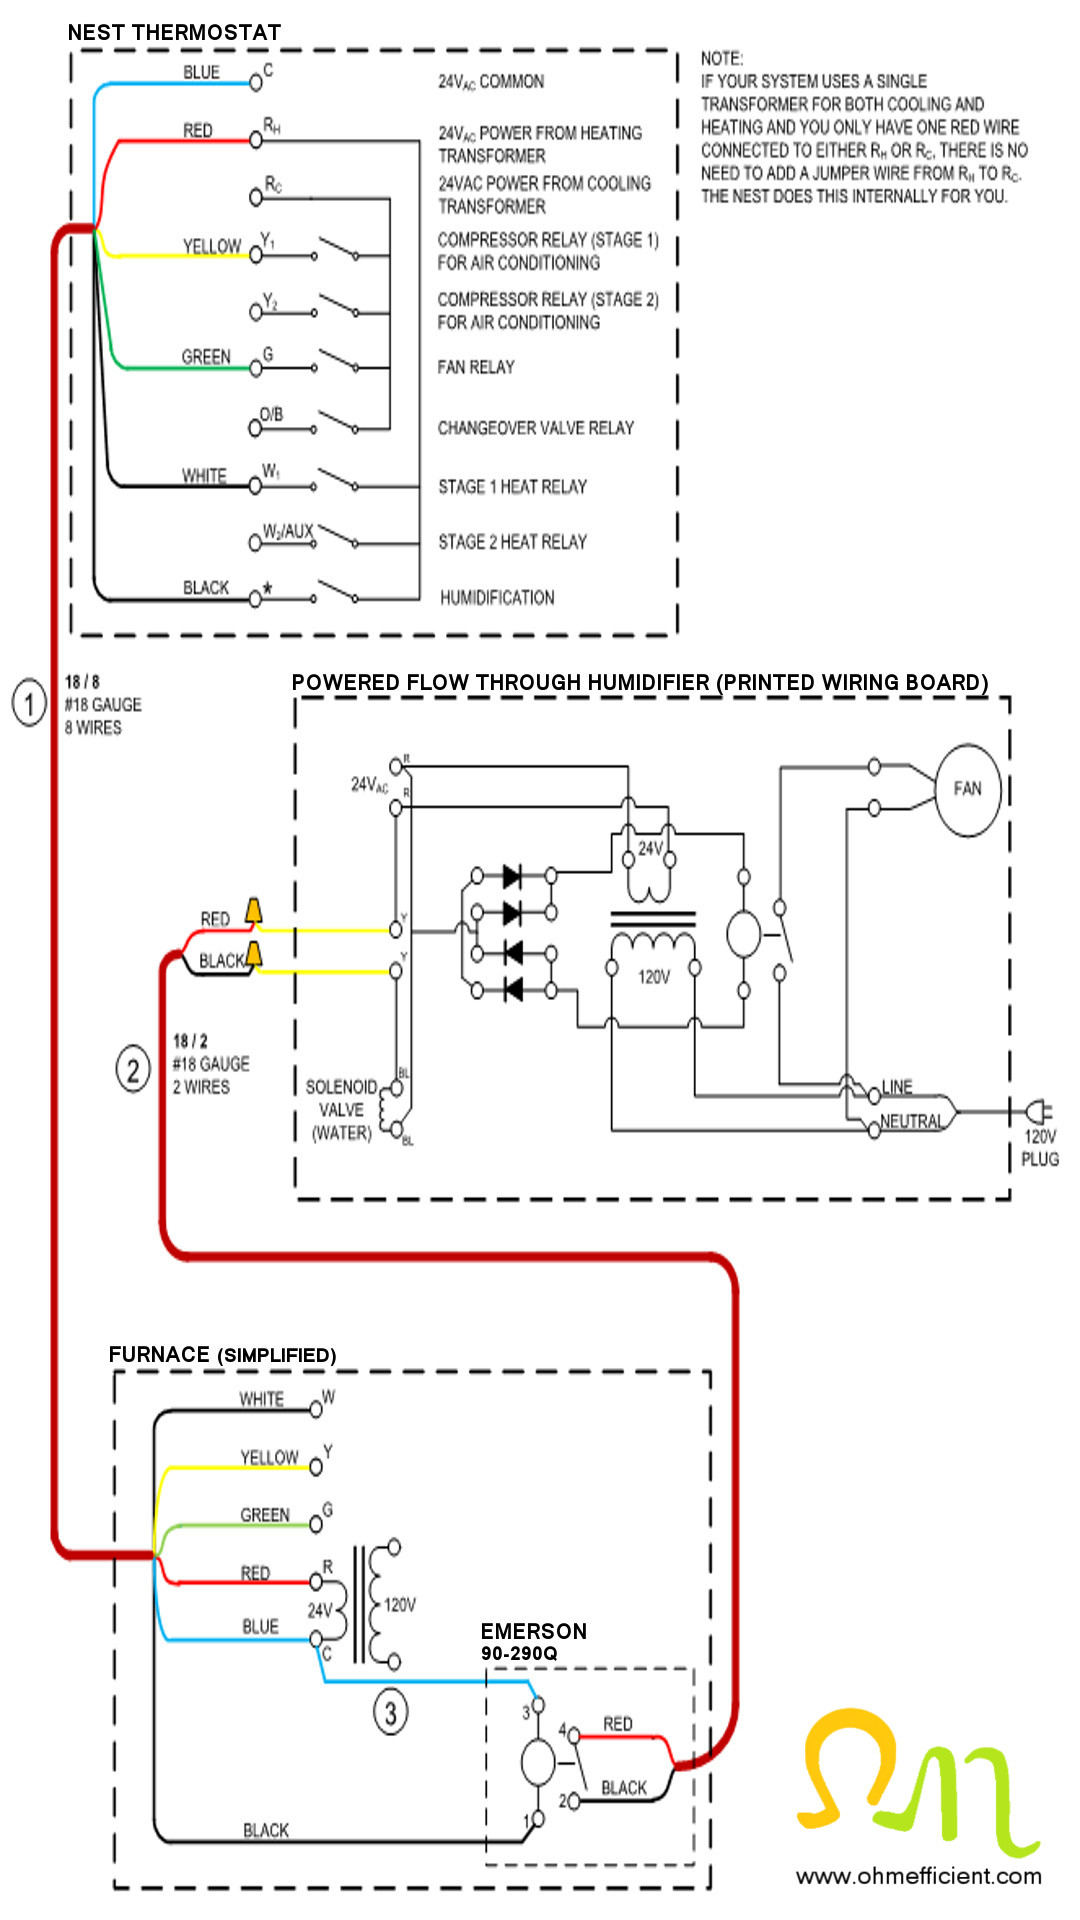 Nest Humidifier Wiring - Simple Wiring Diagram - Nest Wiring Diagram Amanda